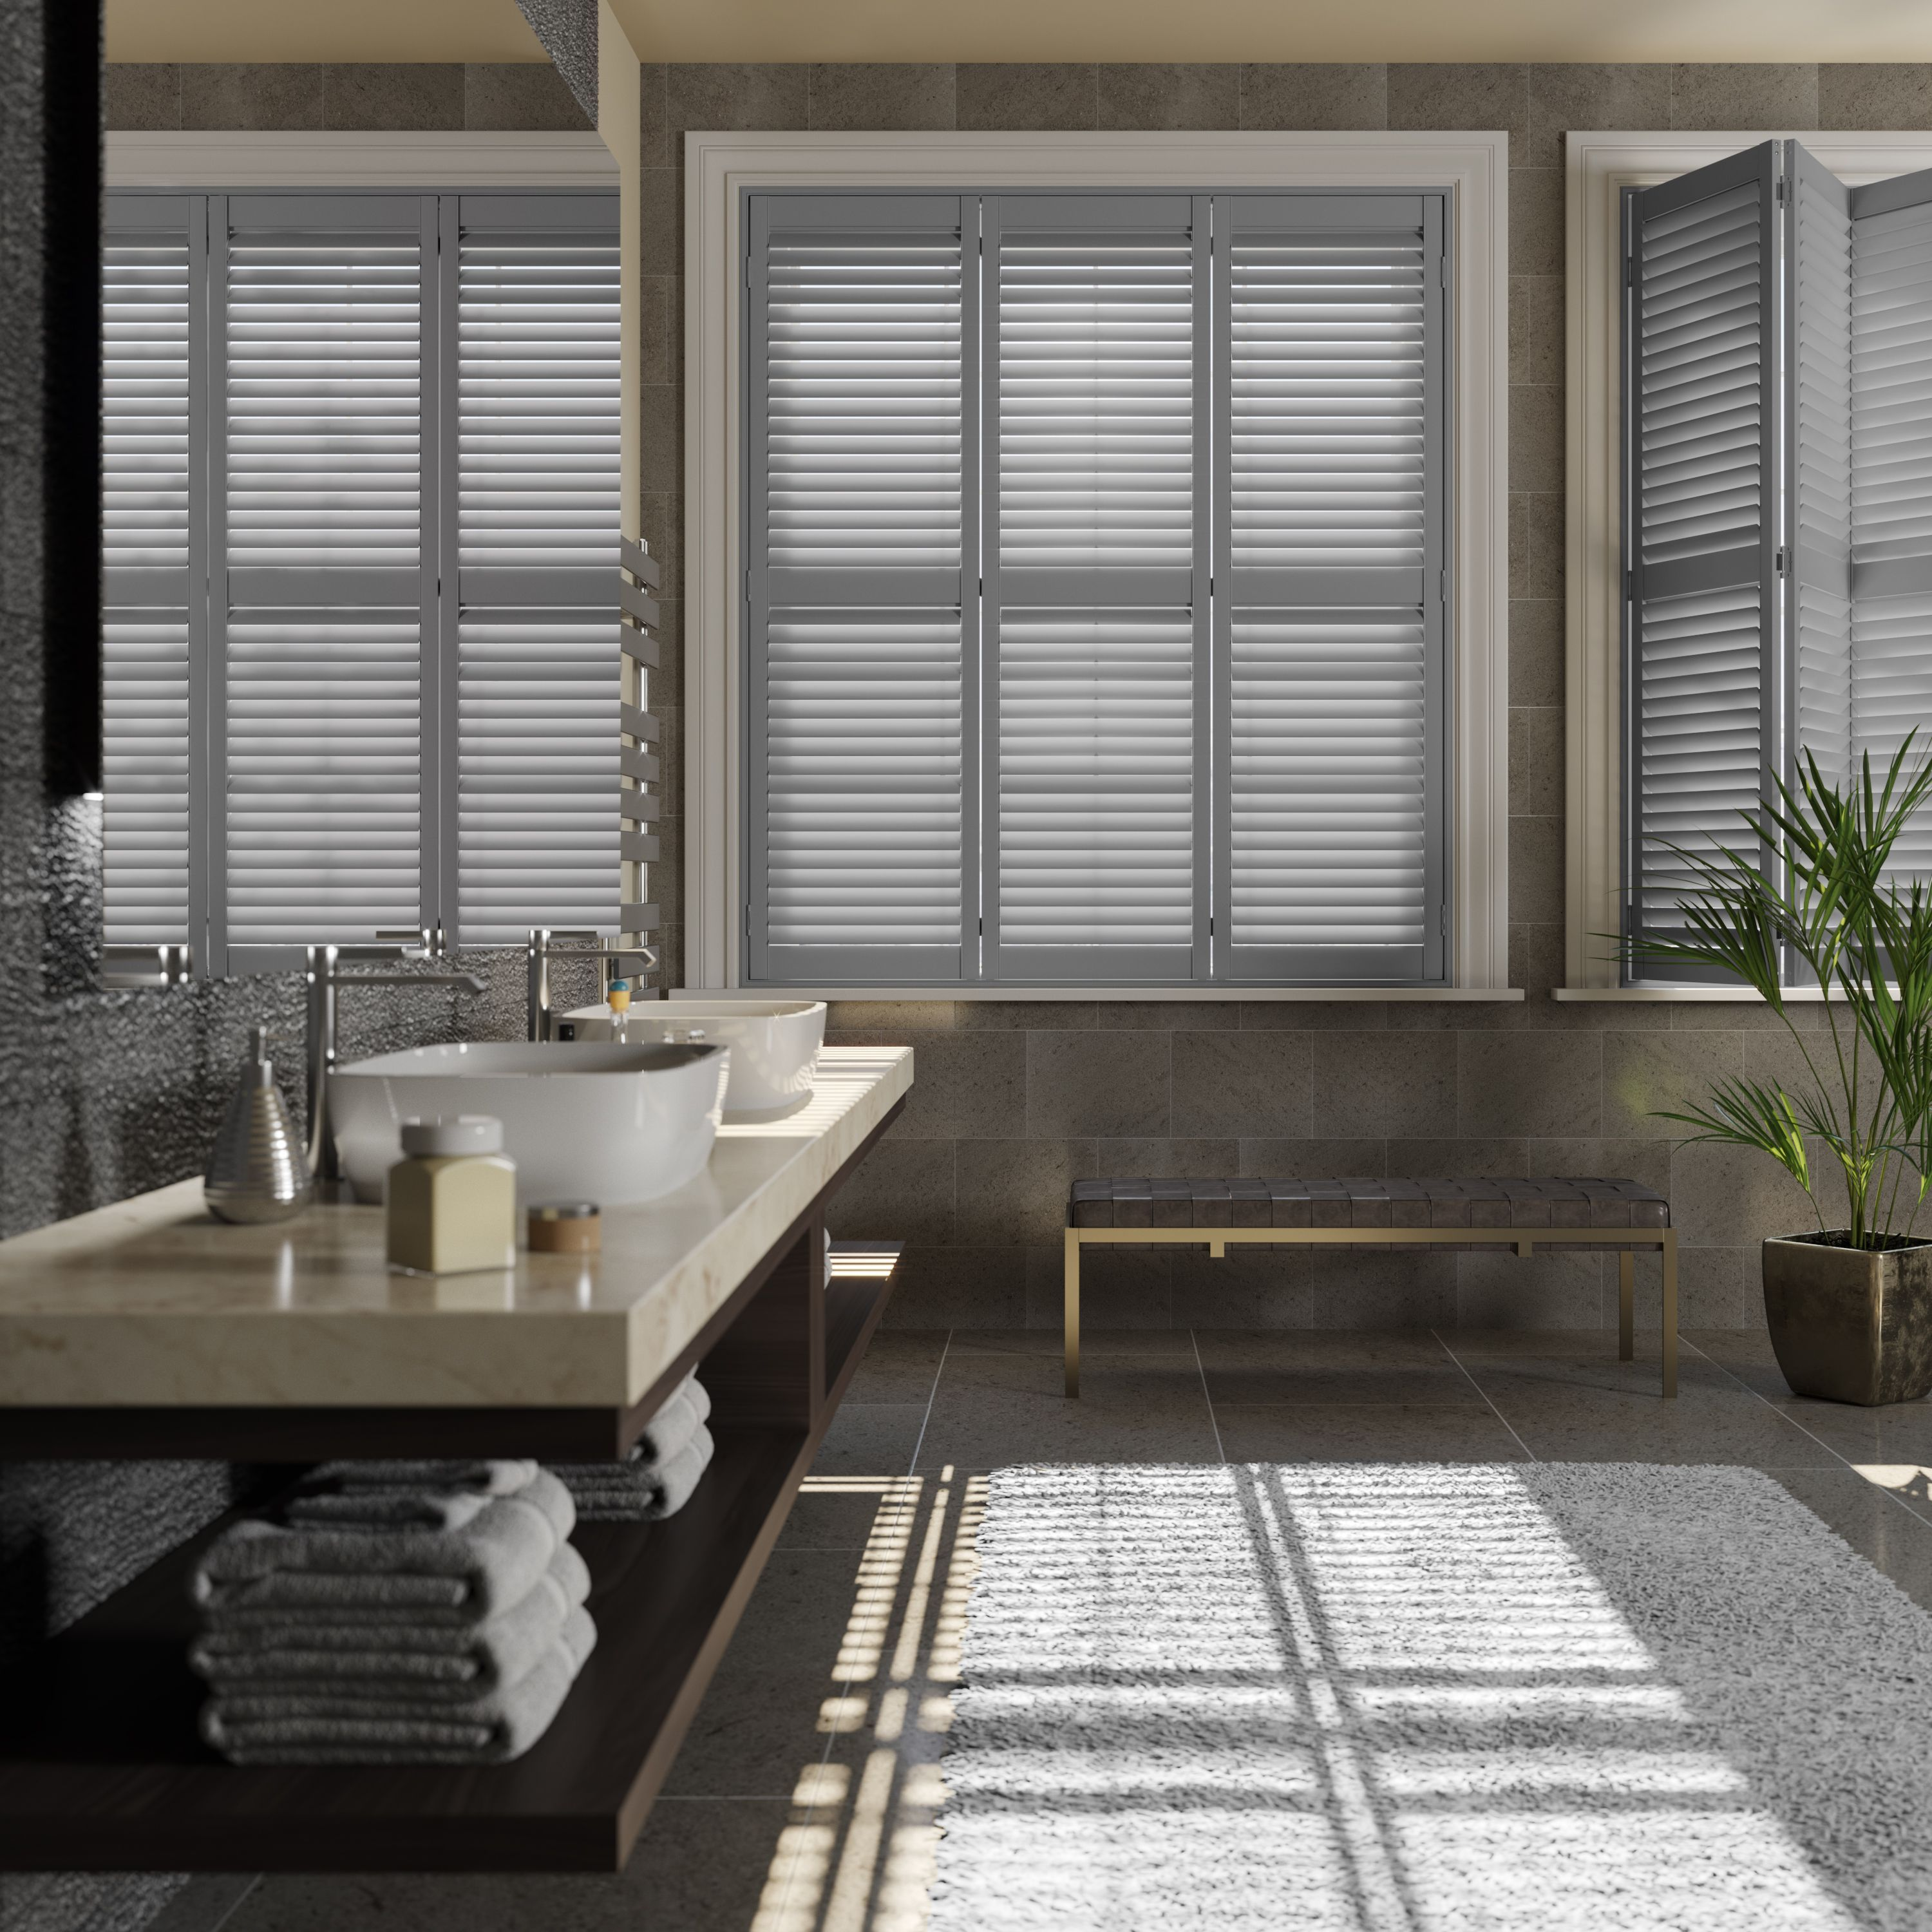 French grey bathroom shutters from blinds2go shutters